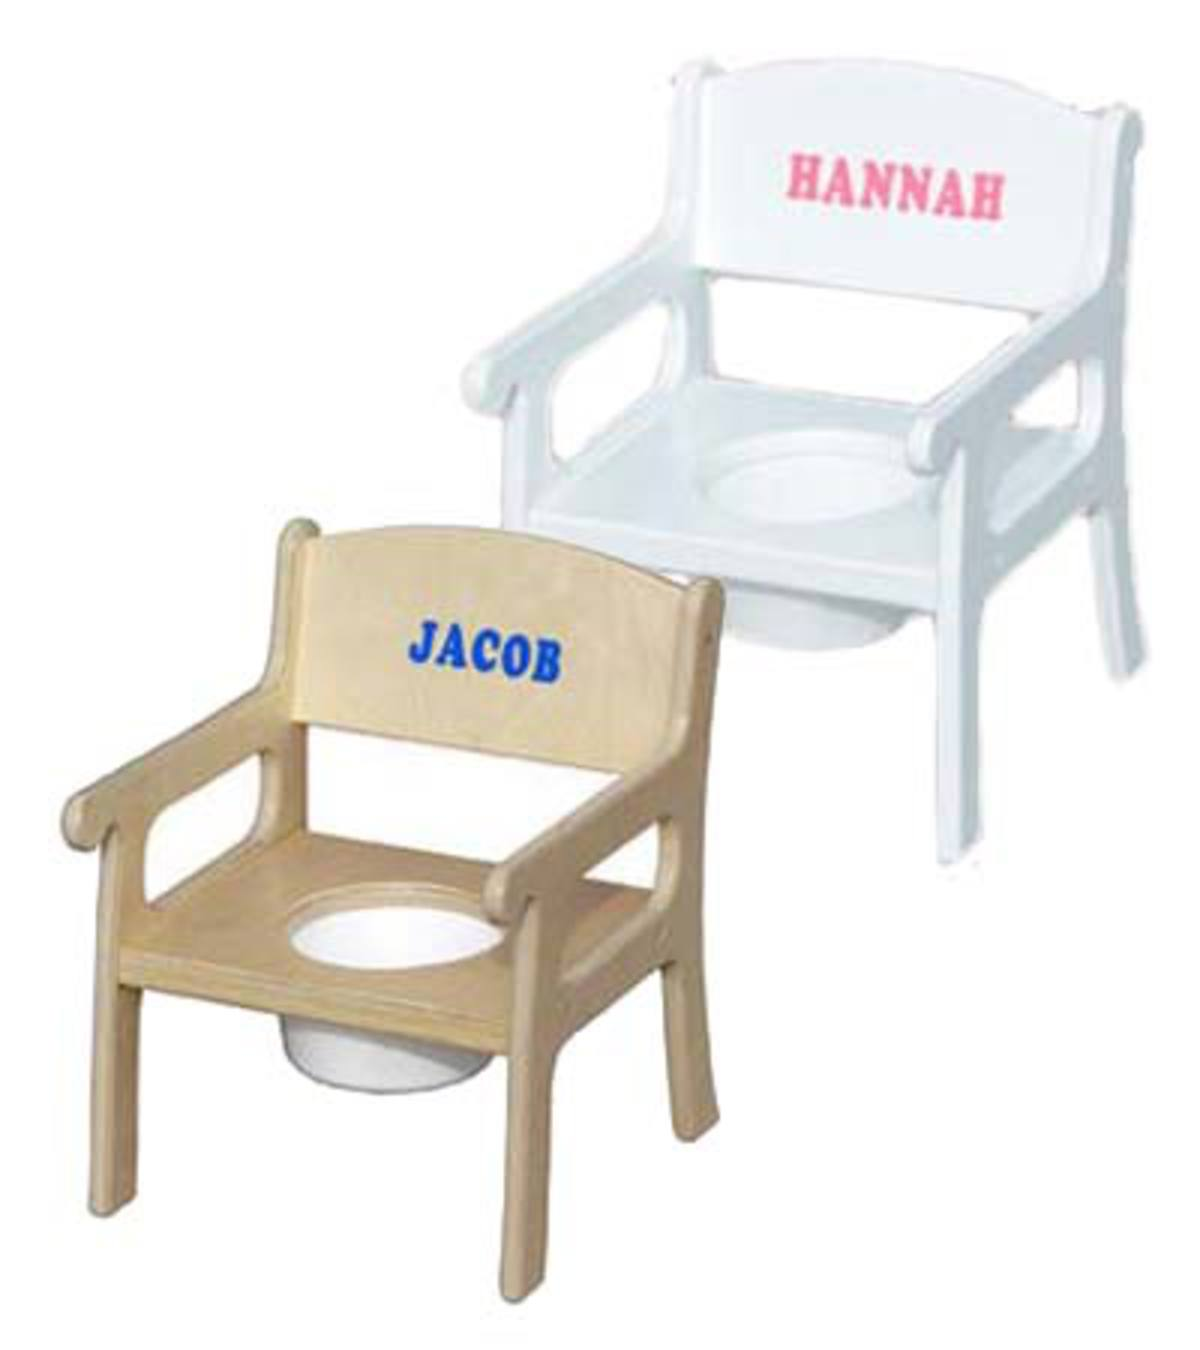 Personalized Child Potty Chair - Natural-Blue Lettering